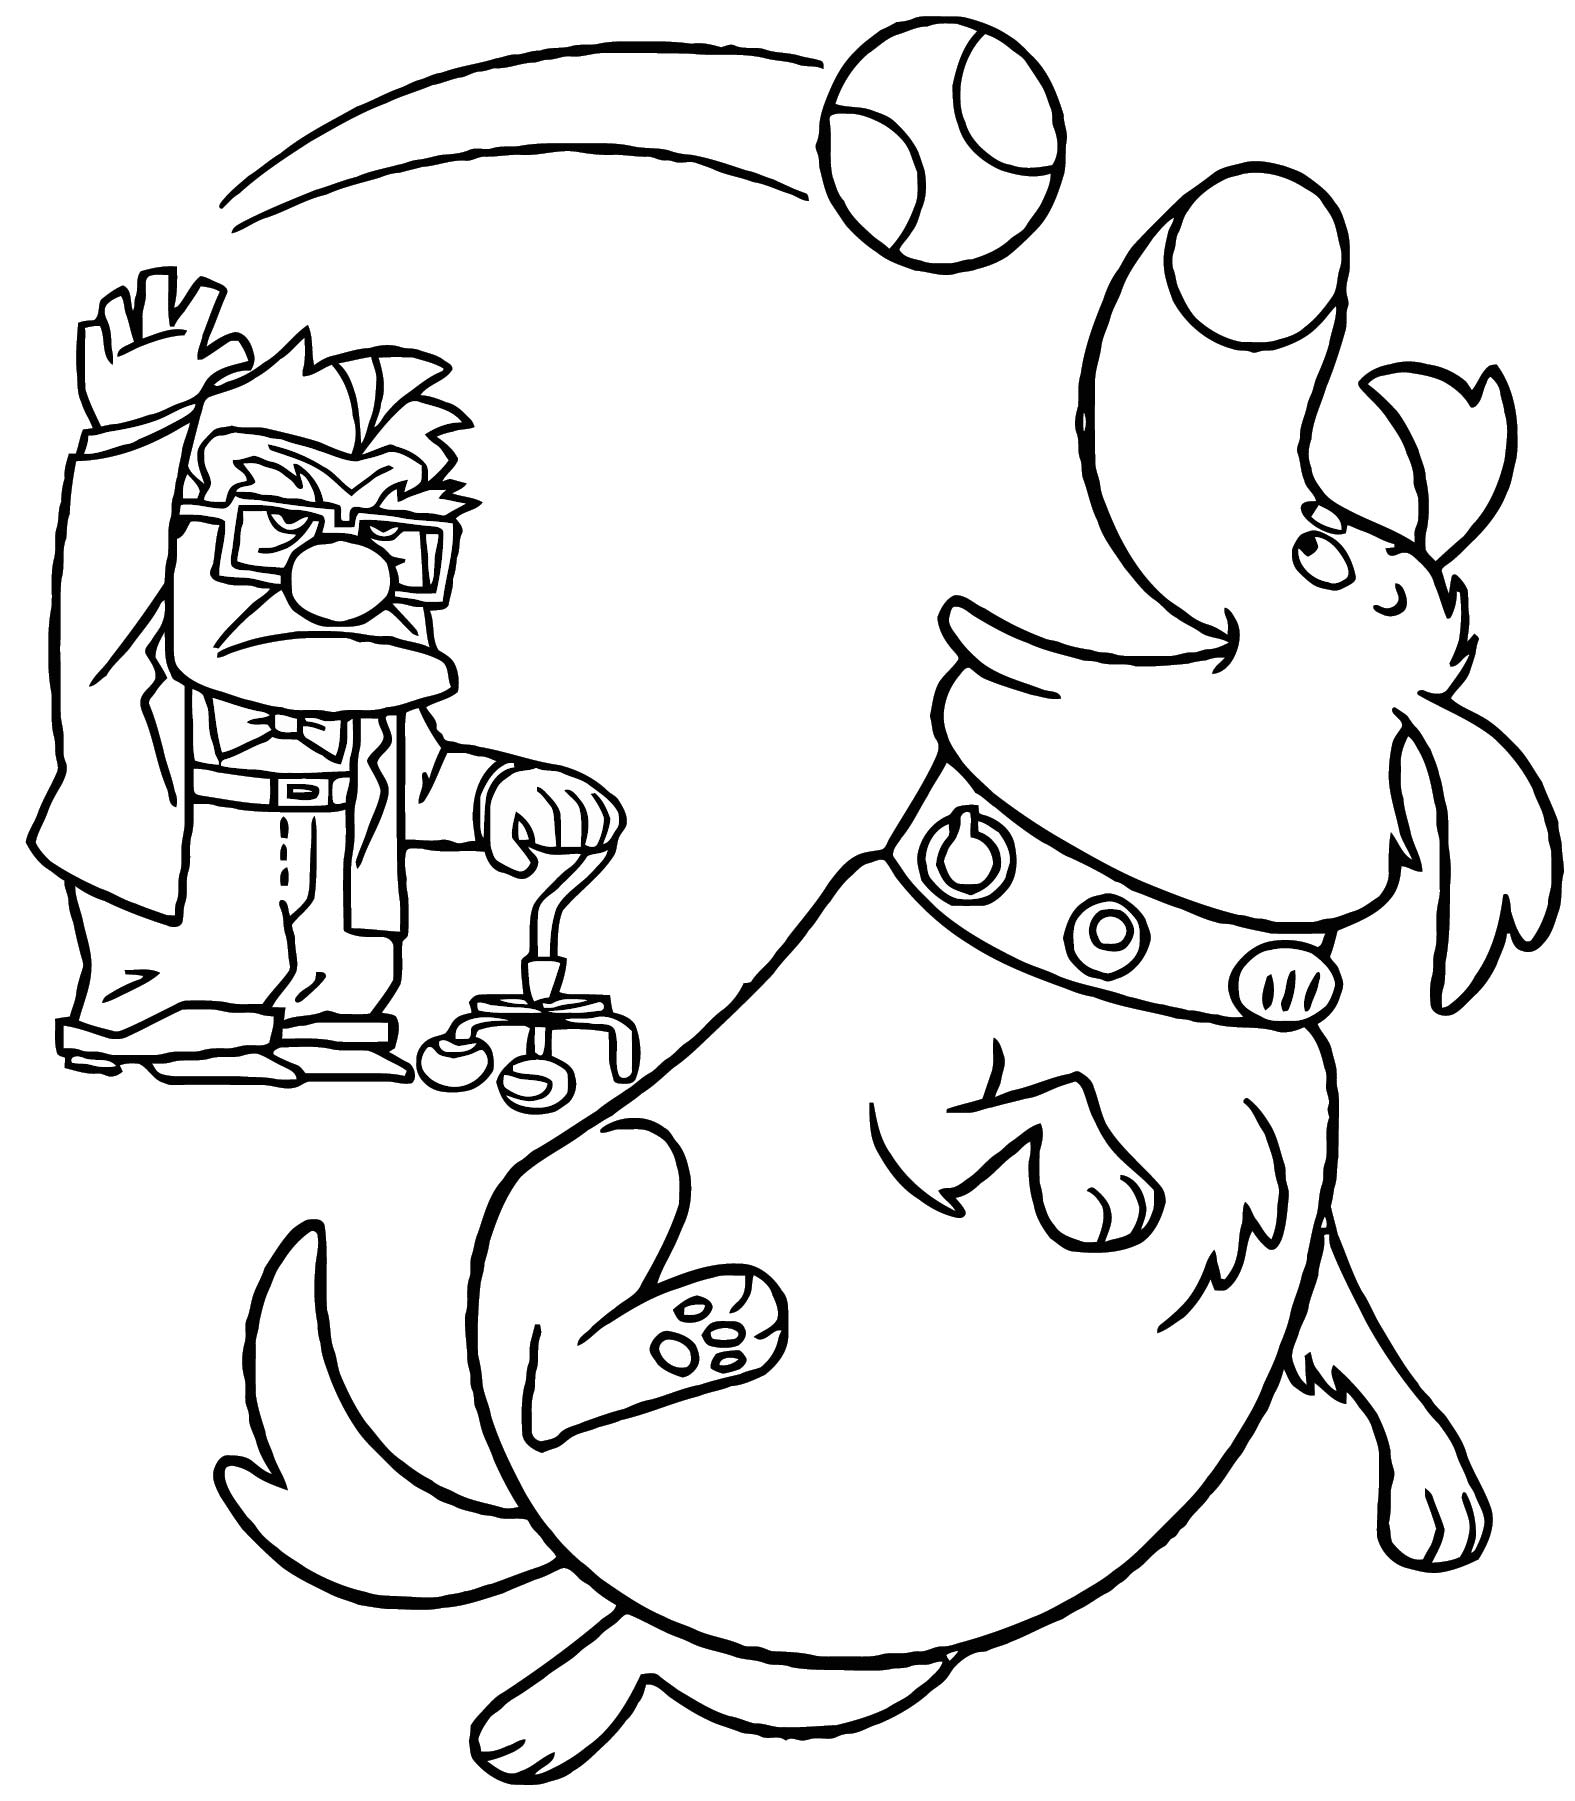 Disney Up Coloring Book Coloring Pages For 8 And Up Disney Movie